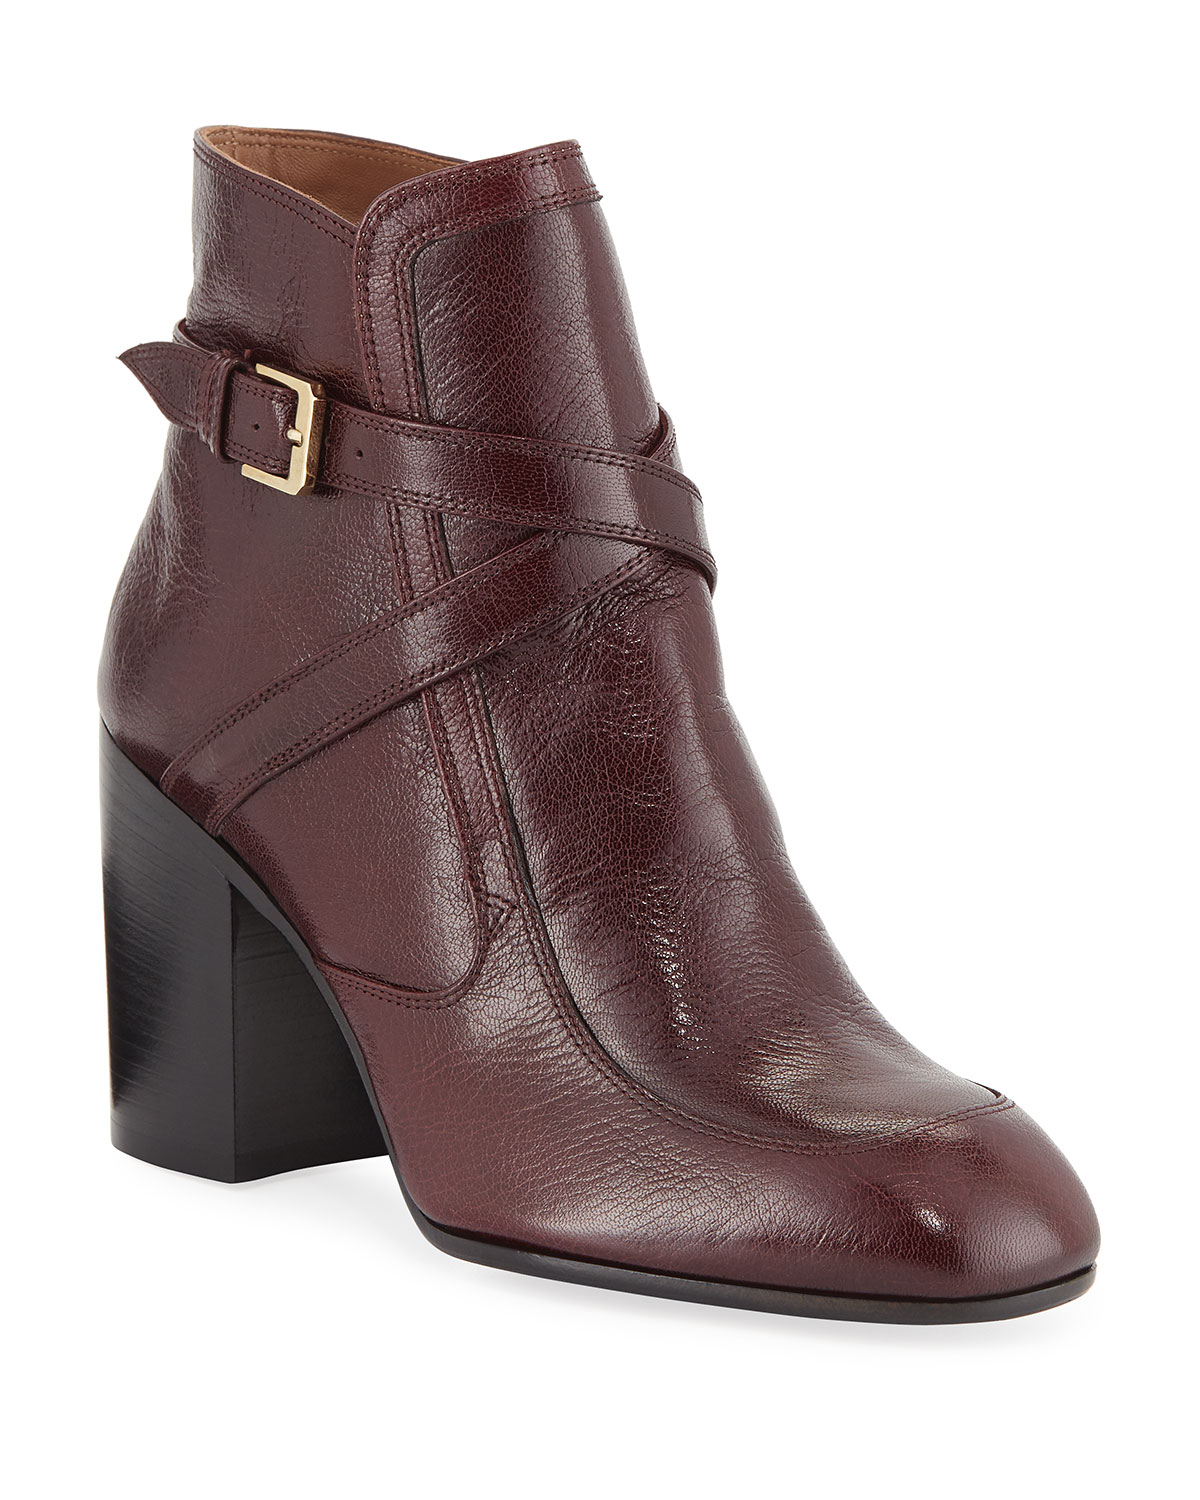 Laurence Dacade Boots TONIA CRISSCROSS LEATHER BOOTIES